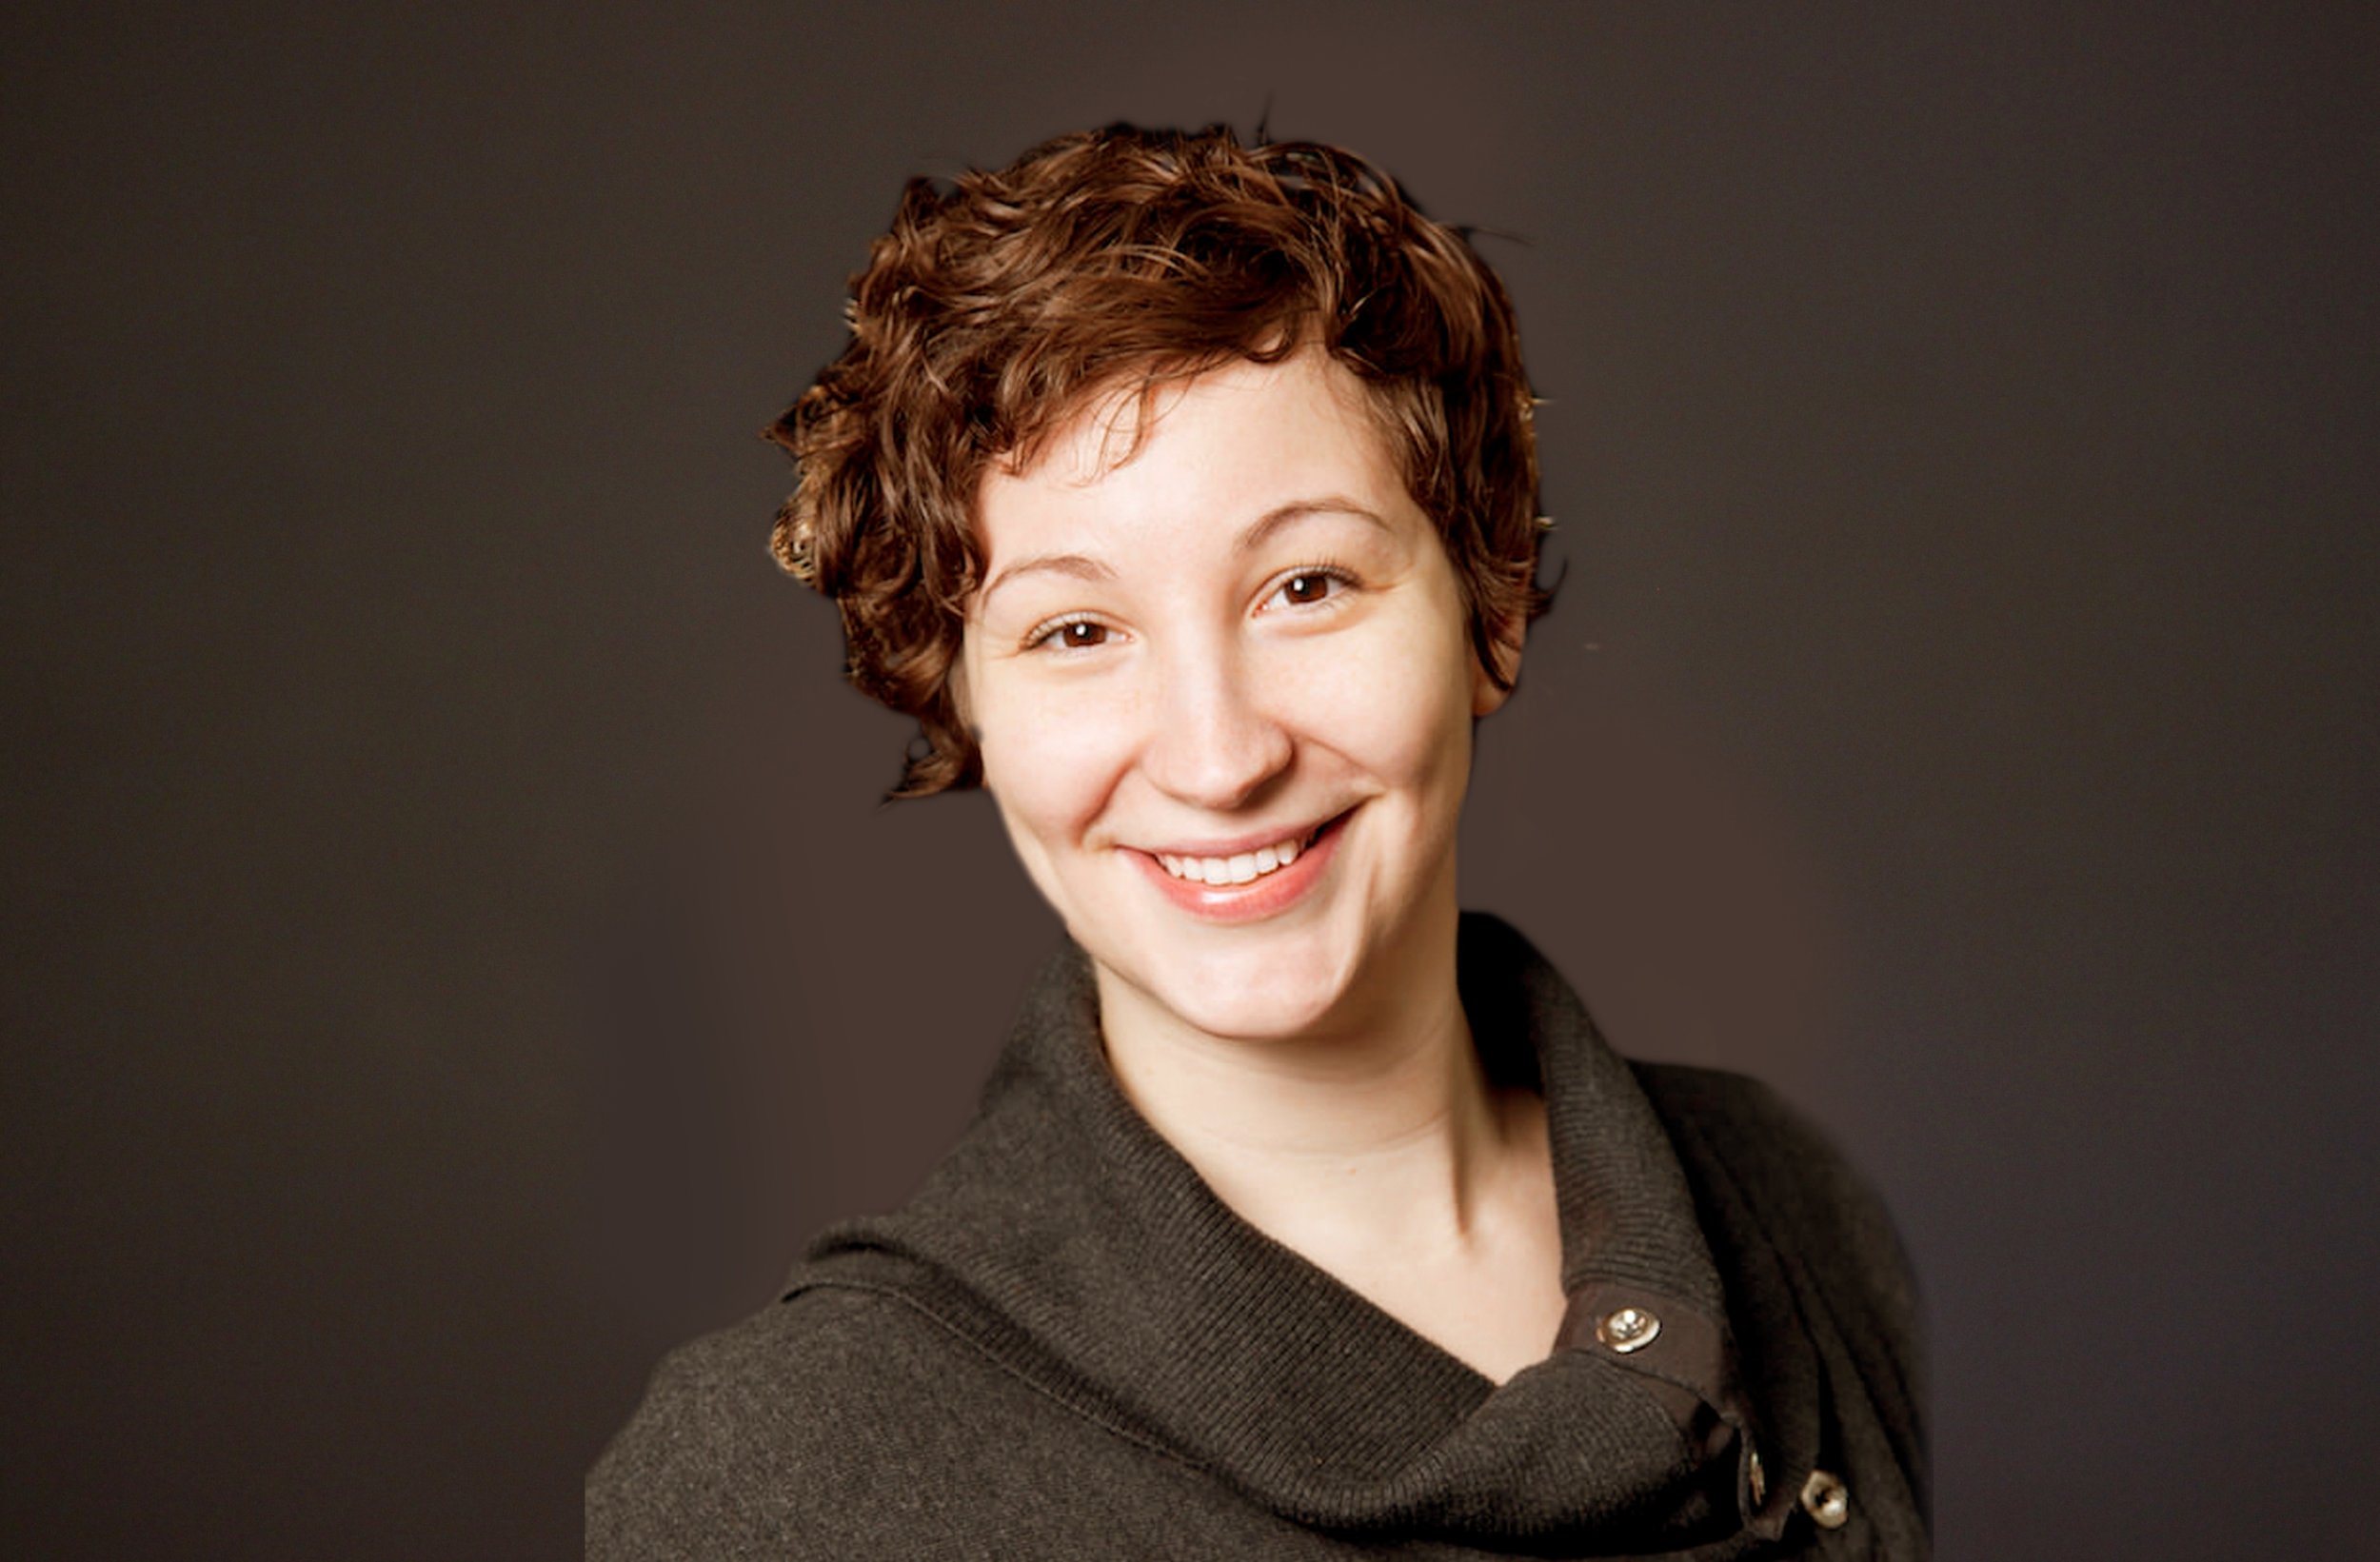 ANGELA KISER - Angela is the Program and Communications Director and core MB Adaptors ensemble. She lives in Barryville, NY and is certifying full time along with developing a new work with the company directed by Kari Margolis.